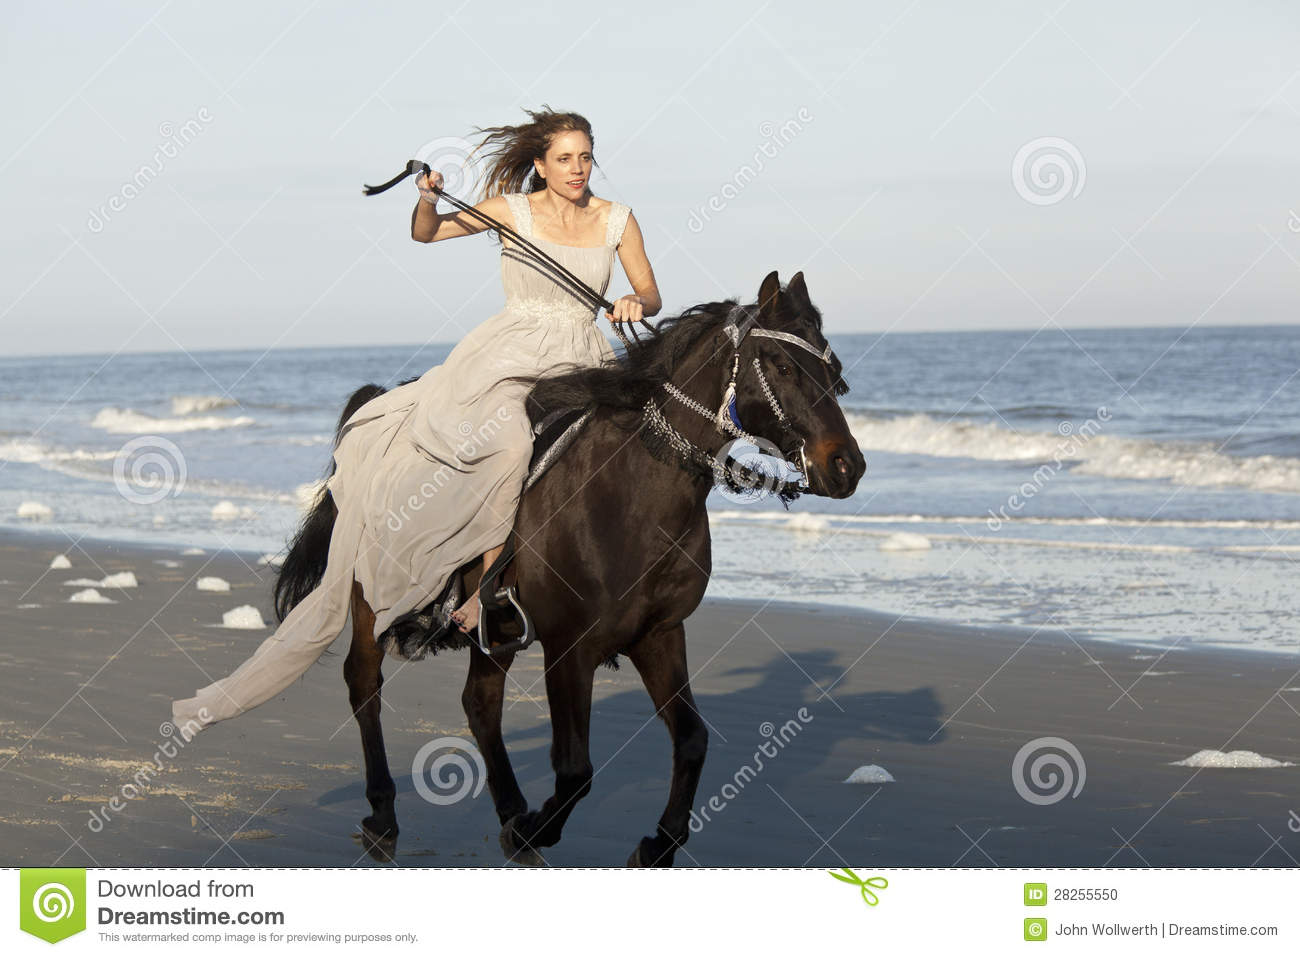 Woman On Galloping Horse On Beach Stock Photo - Image of ...